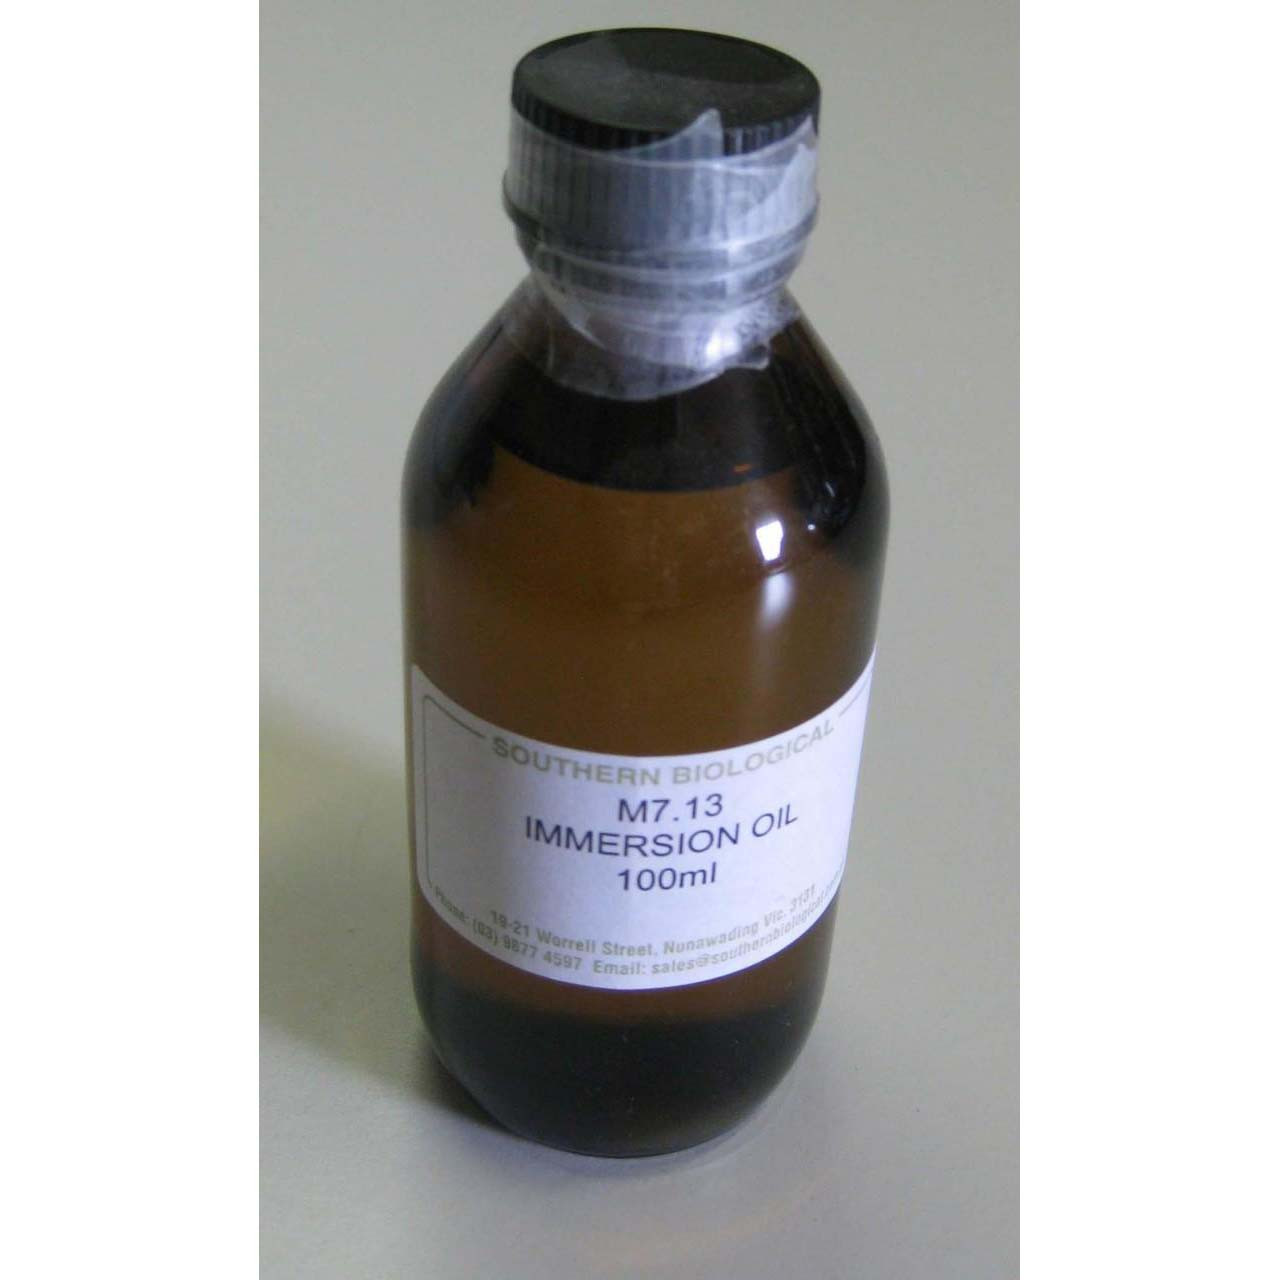 M7.13 - Immersion oil, type A, 150cs